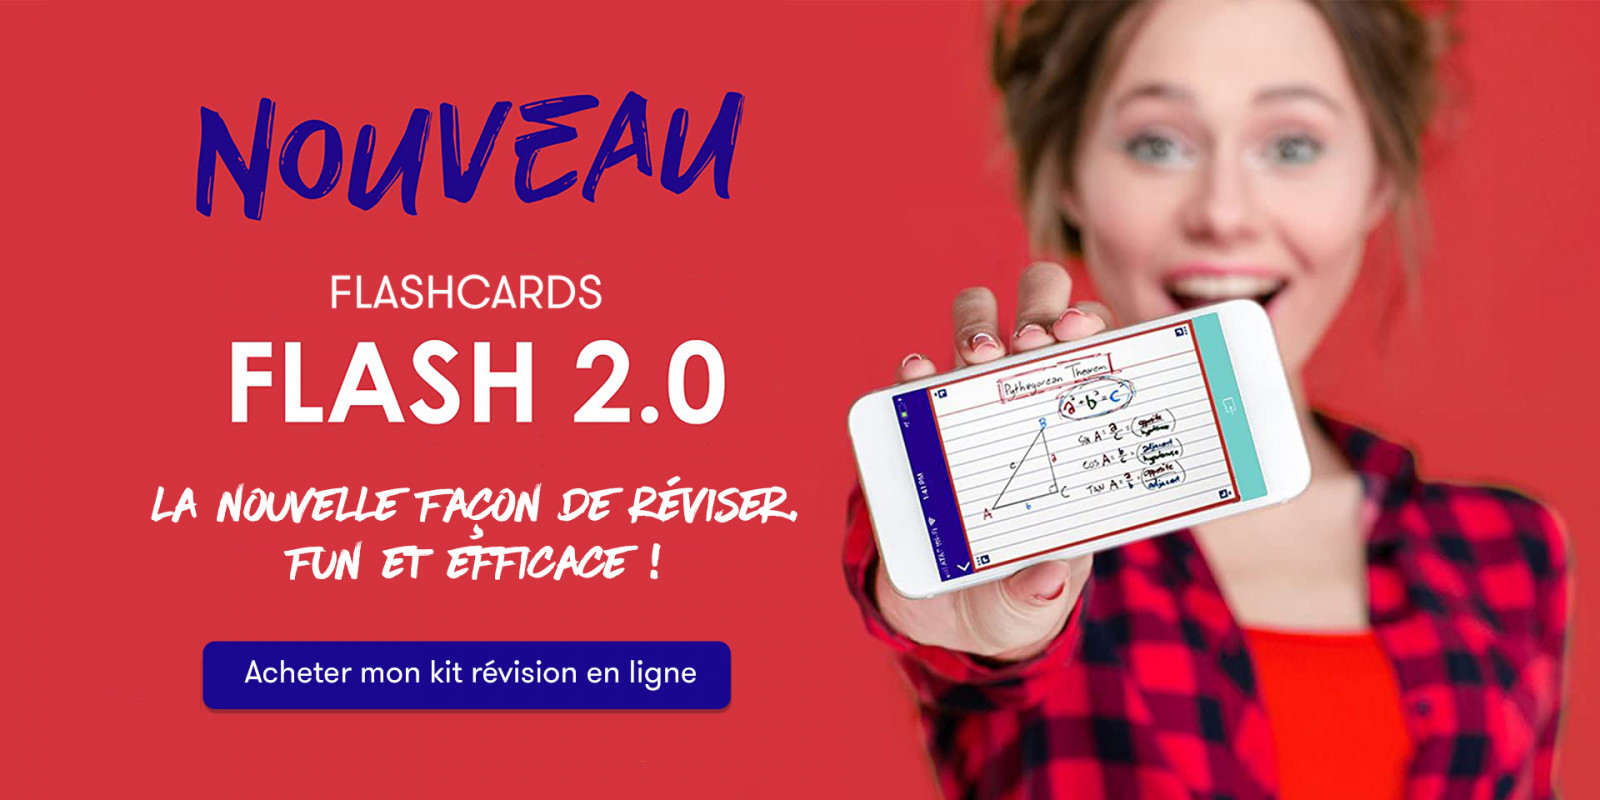 Flashcards OXFORD FLASH 2.0 la nouvelle façon de réviser fun et efficace